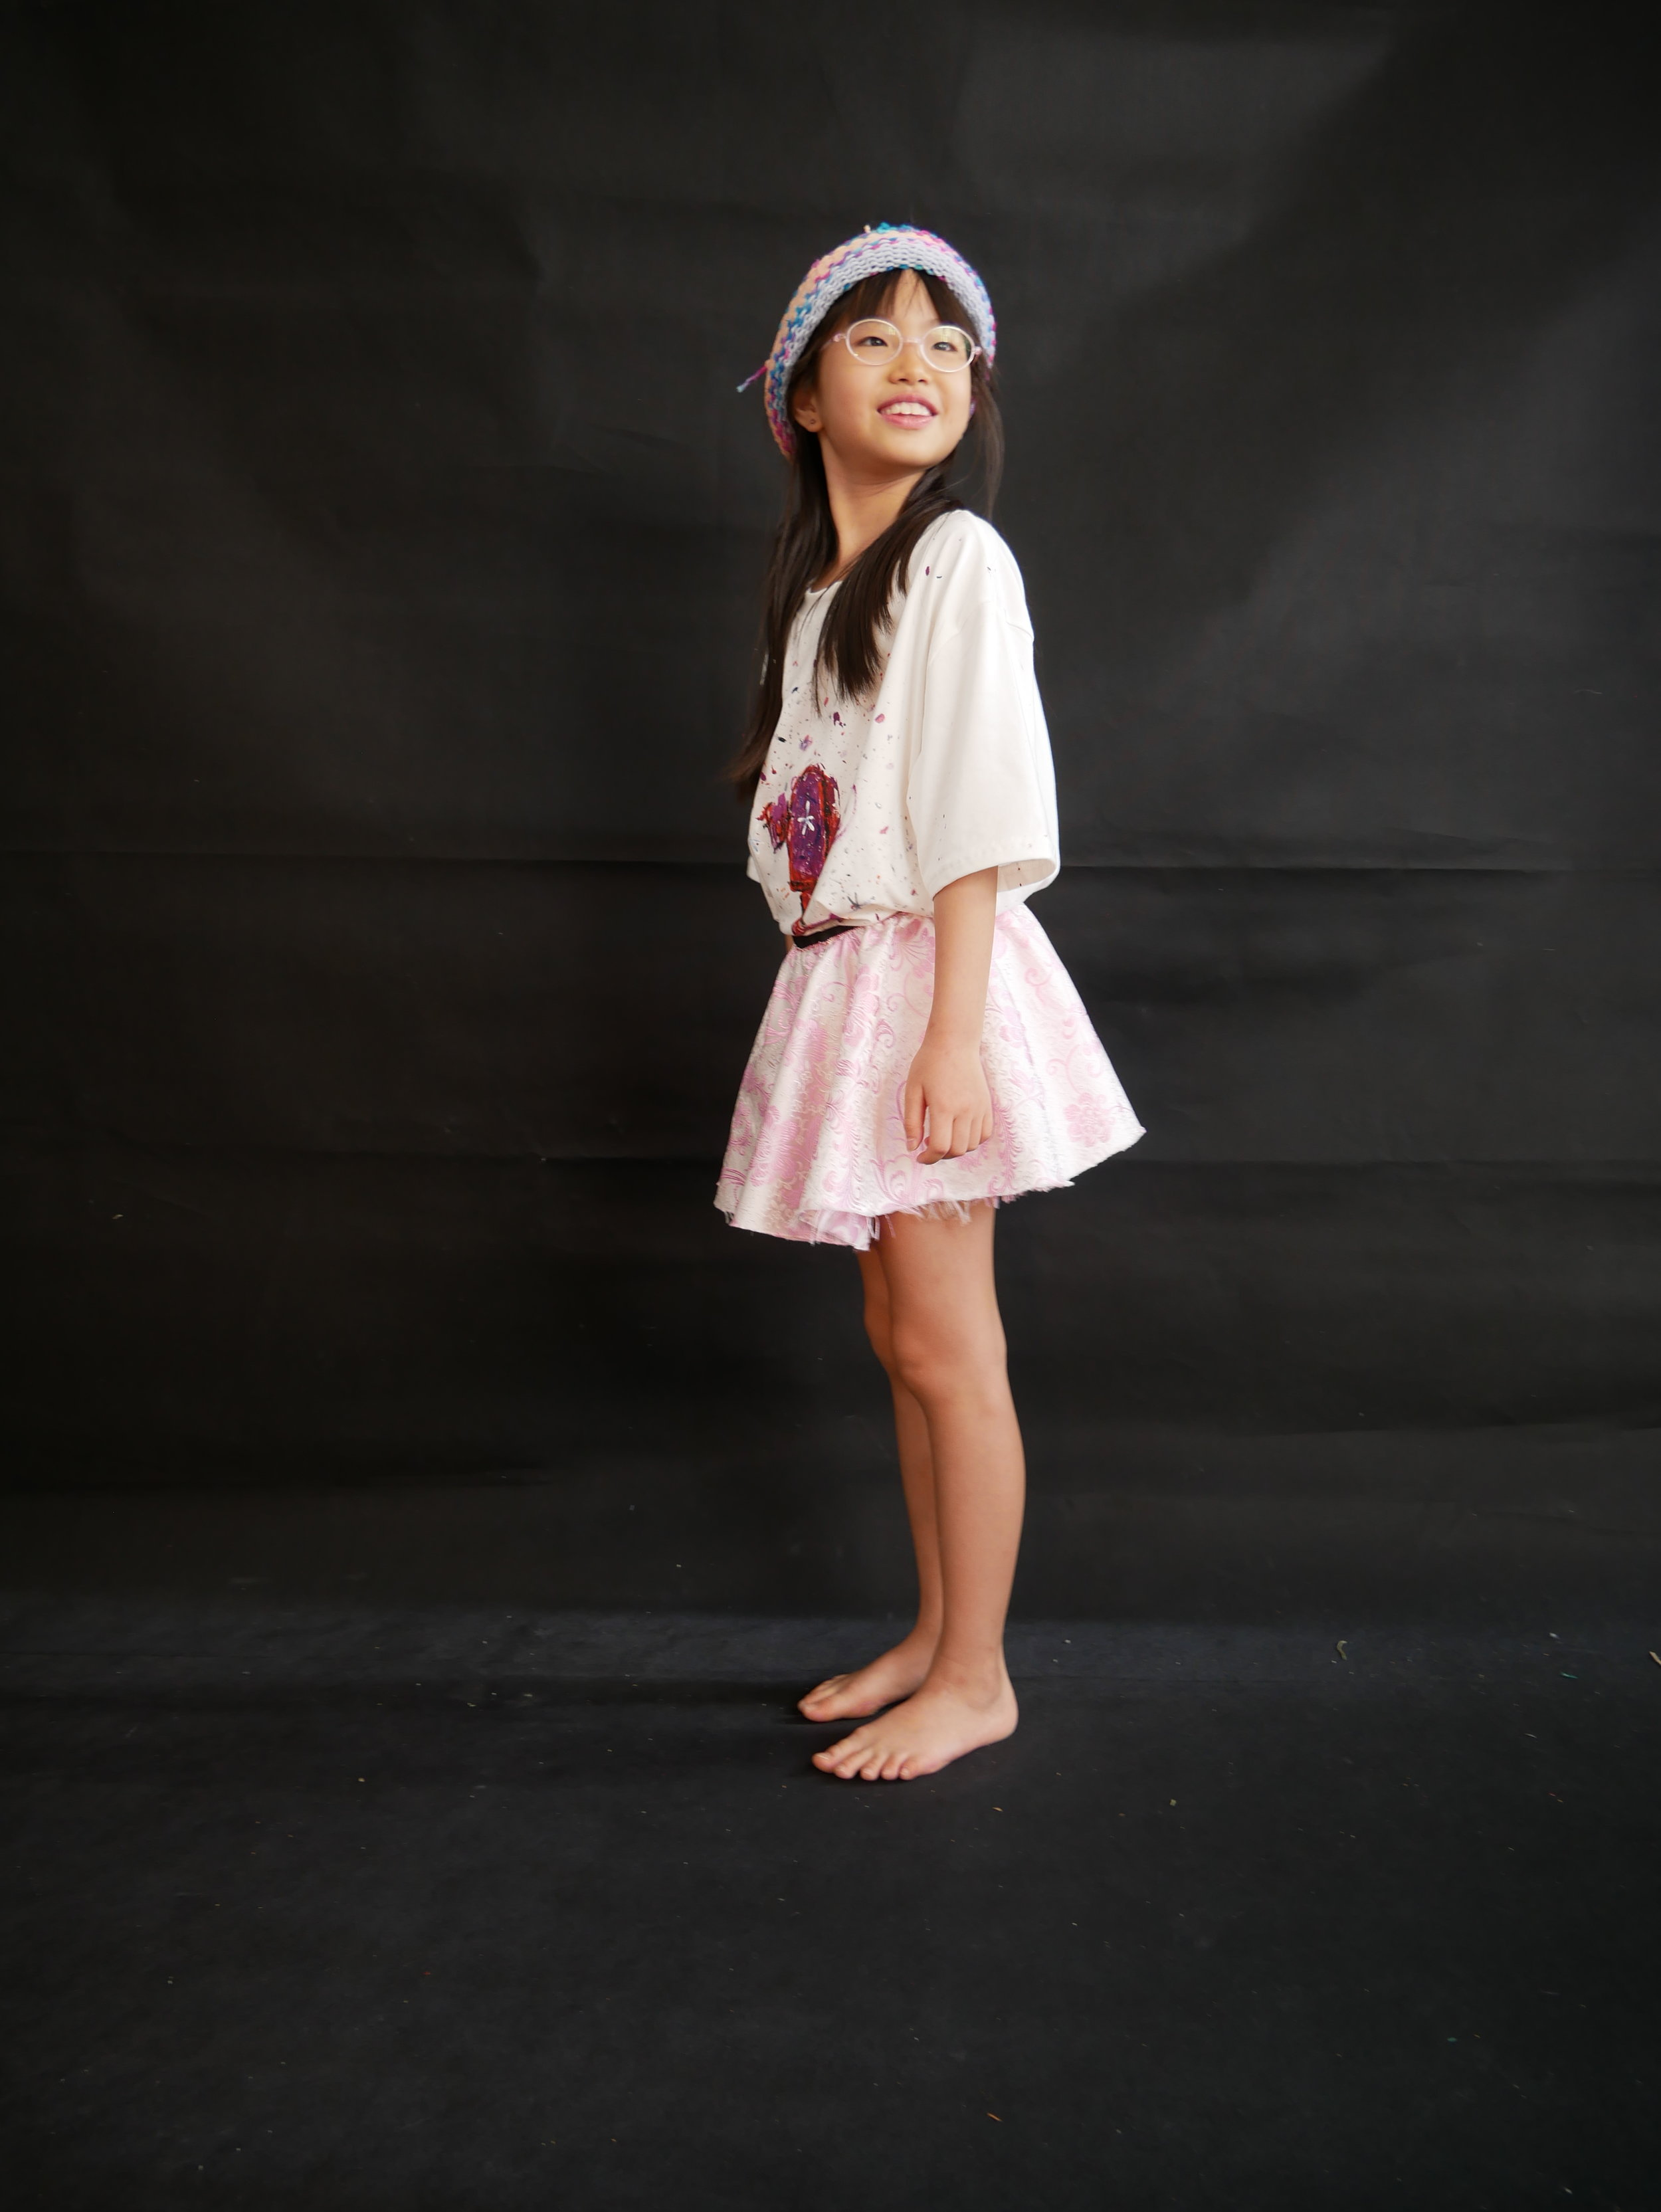 Hi, my name is Caitlin. I am 9 years old. I knit in my spare time. I like fashion and the colour pink.